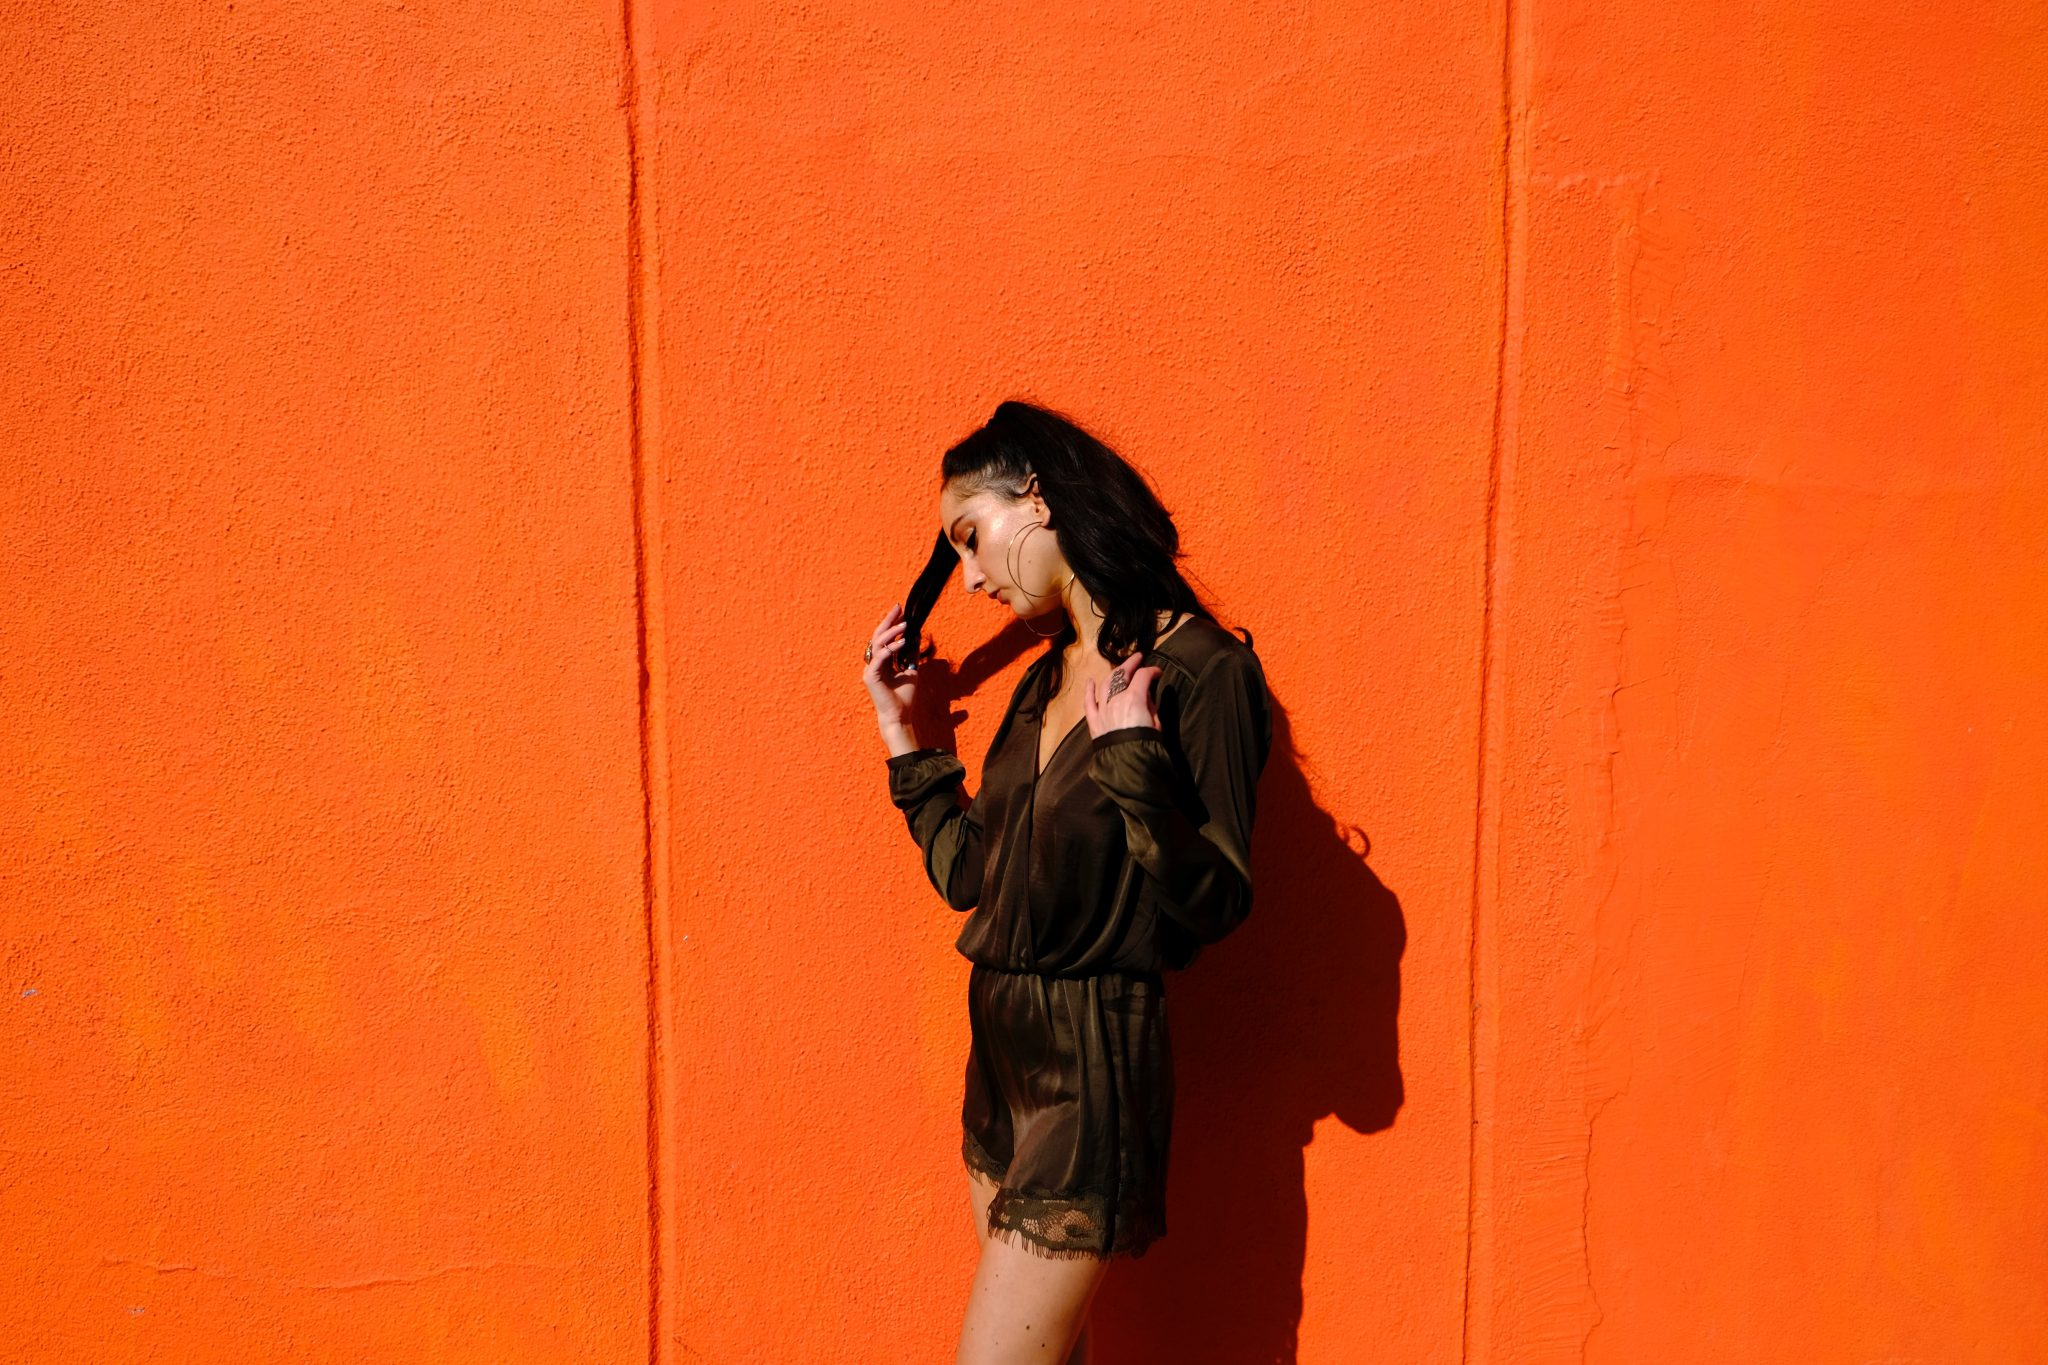 woman near orange wall